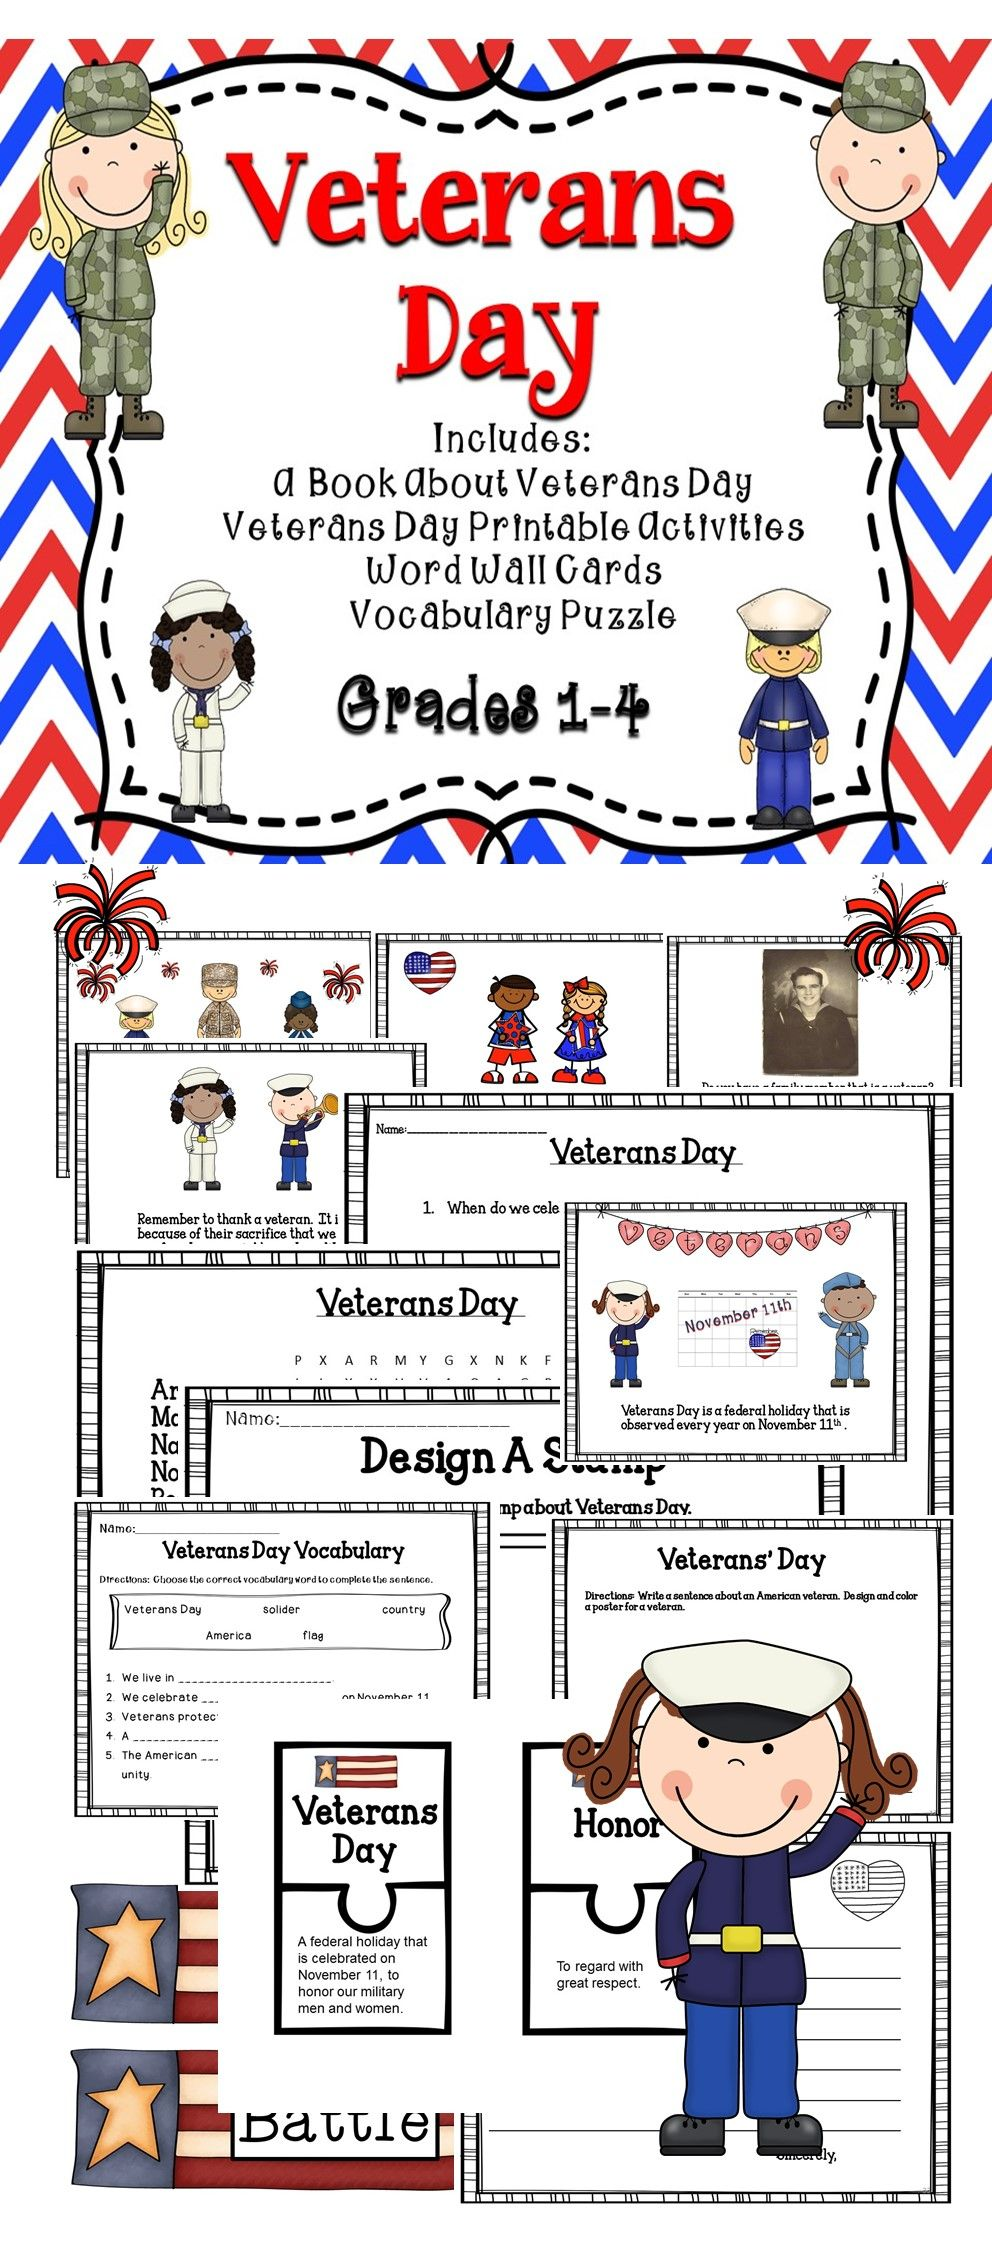 Veterans Day Activities For The Classroom A Great Supplemental Activity Book For Students Includes Vocabulary Veterans Day Activities Veterans Day Veteran [ 2256 x 992 Pixel ]